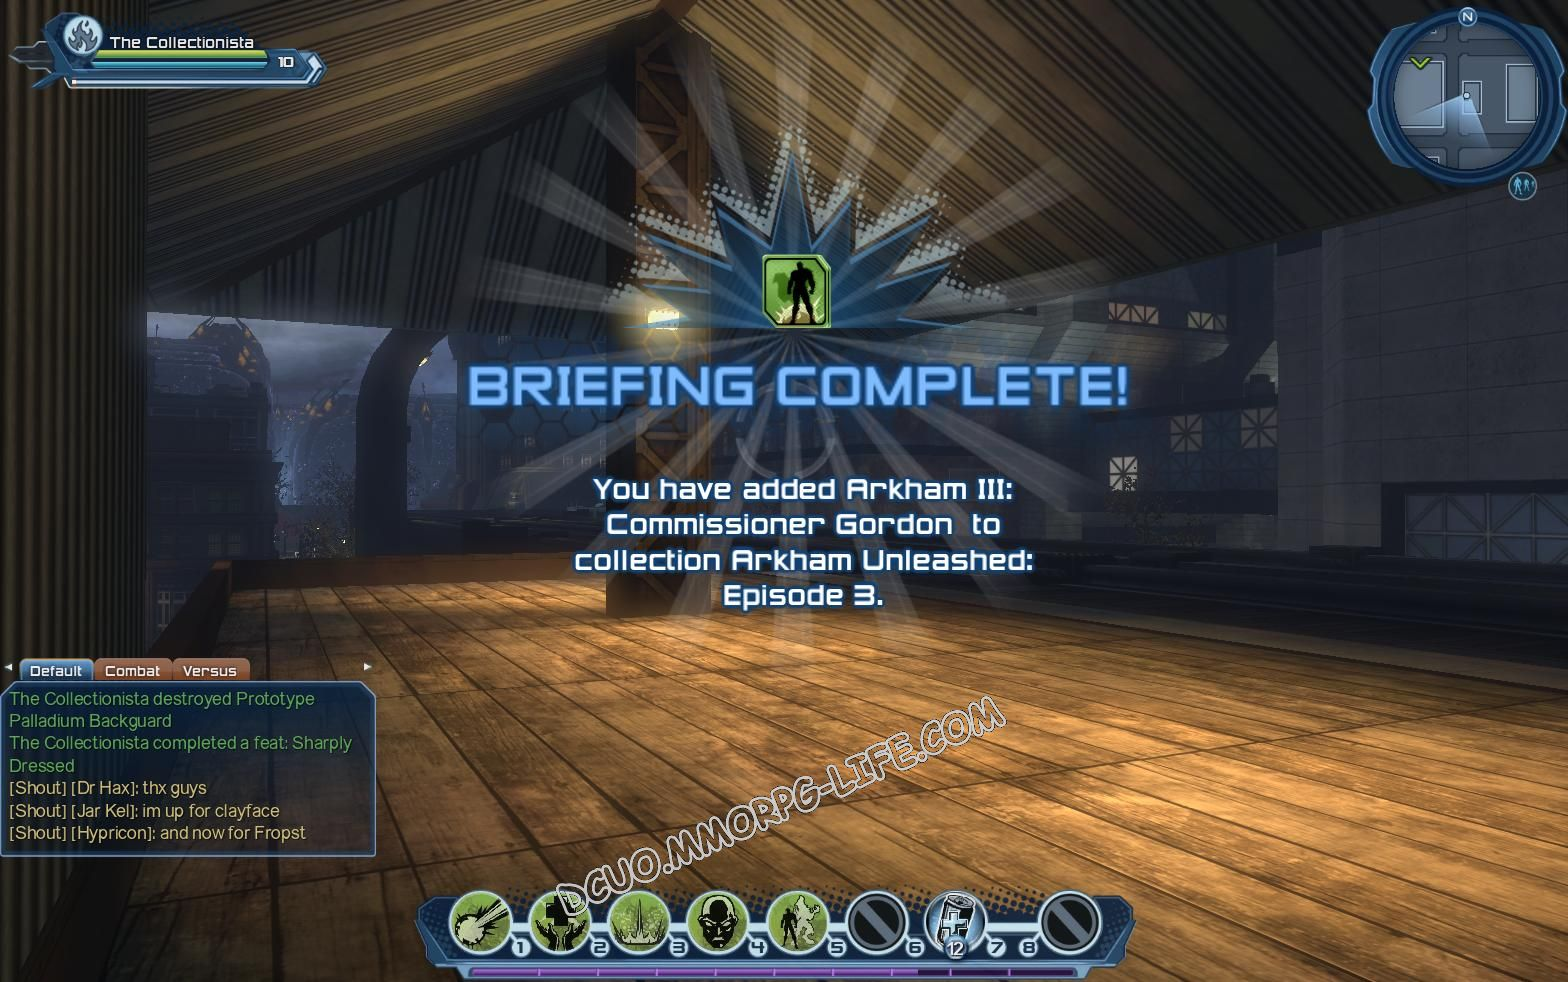 Briefing: Arkham Unleashed: Episode 3, step 4 Arkham III: Commissioner Gordon  image 1600 middle size